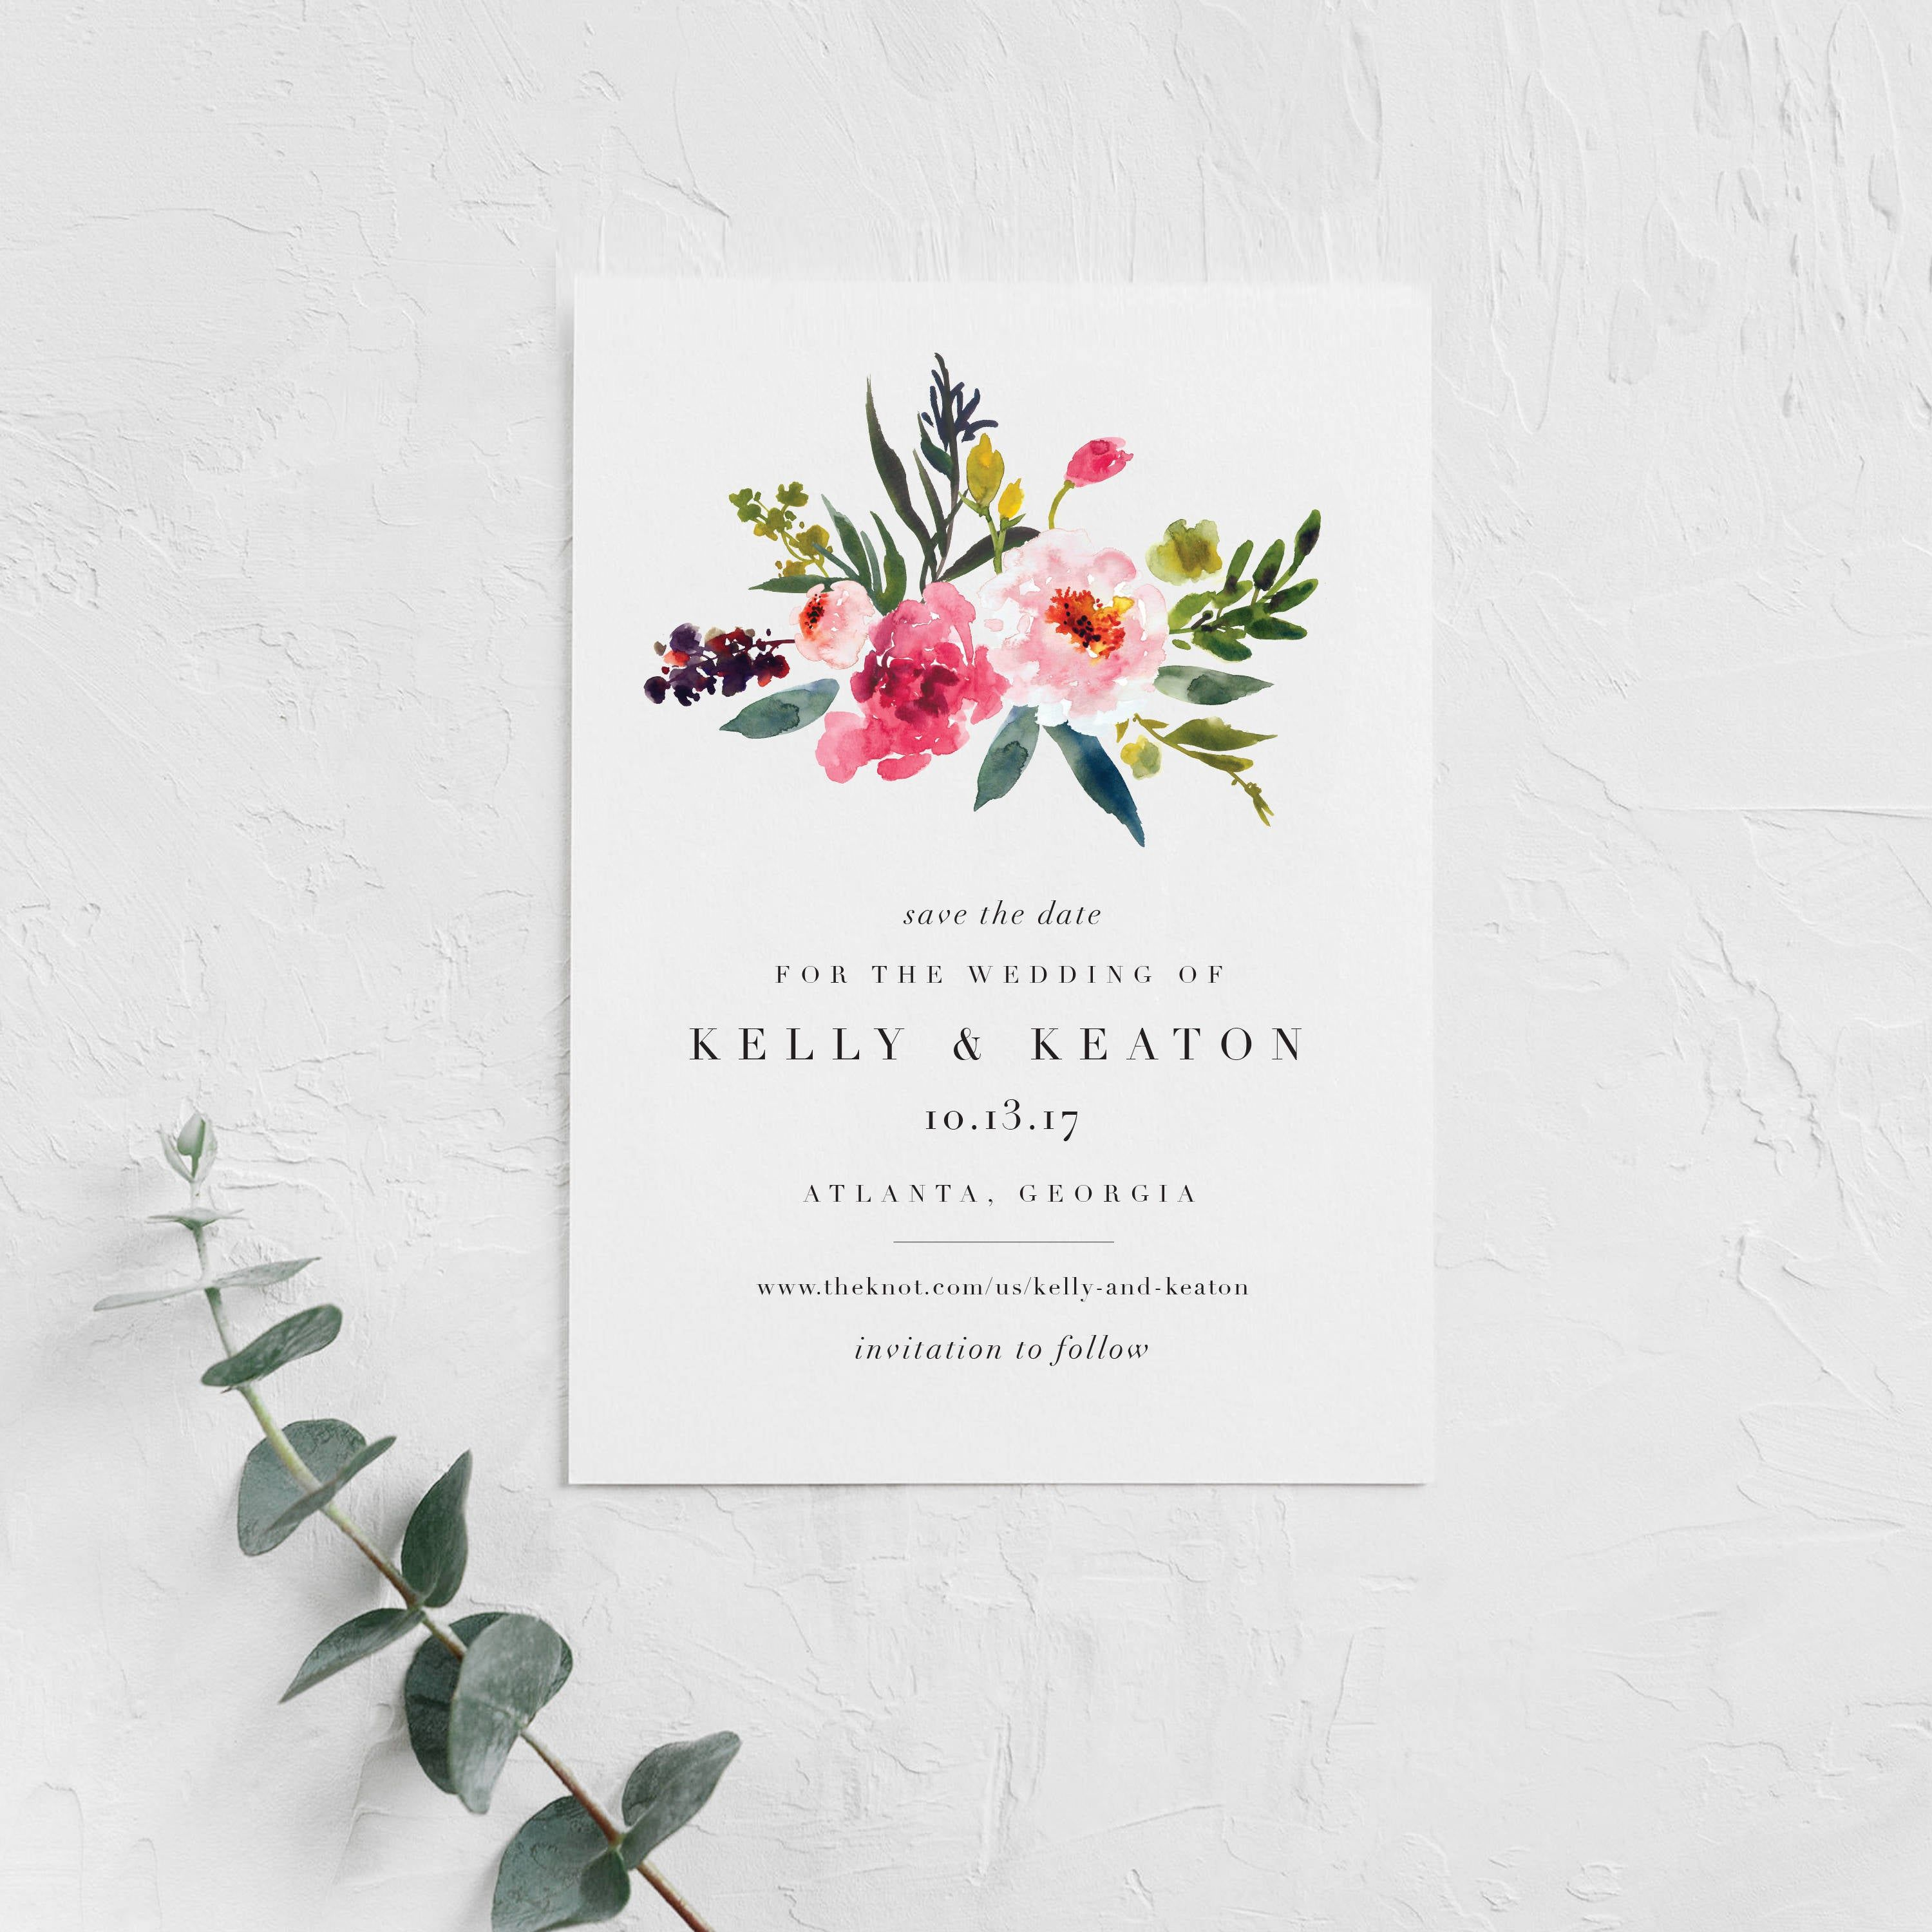 DEPOSIT Colorful Floral Save the Date Vibrant Save the Date Garden Save the Date Bright Floral Save the Date Flower Save the Date